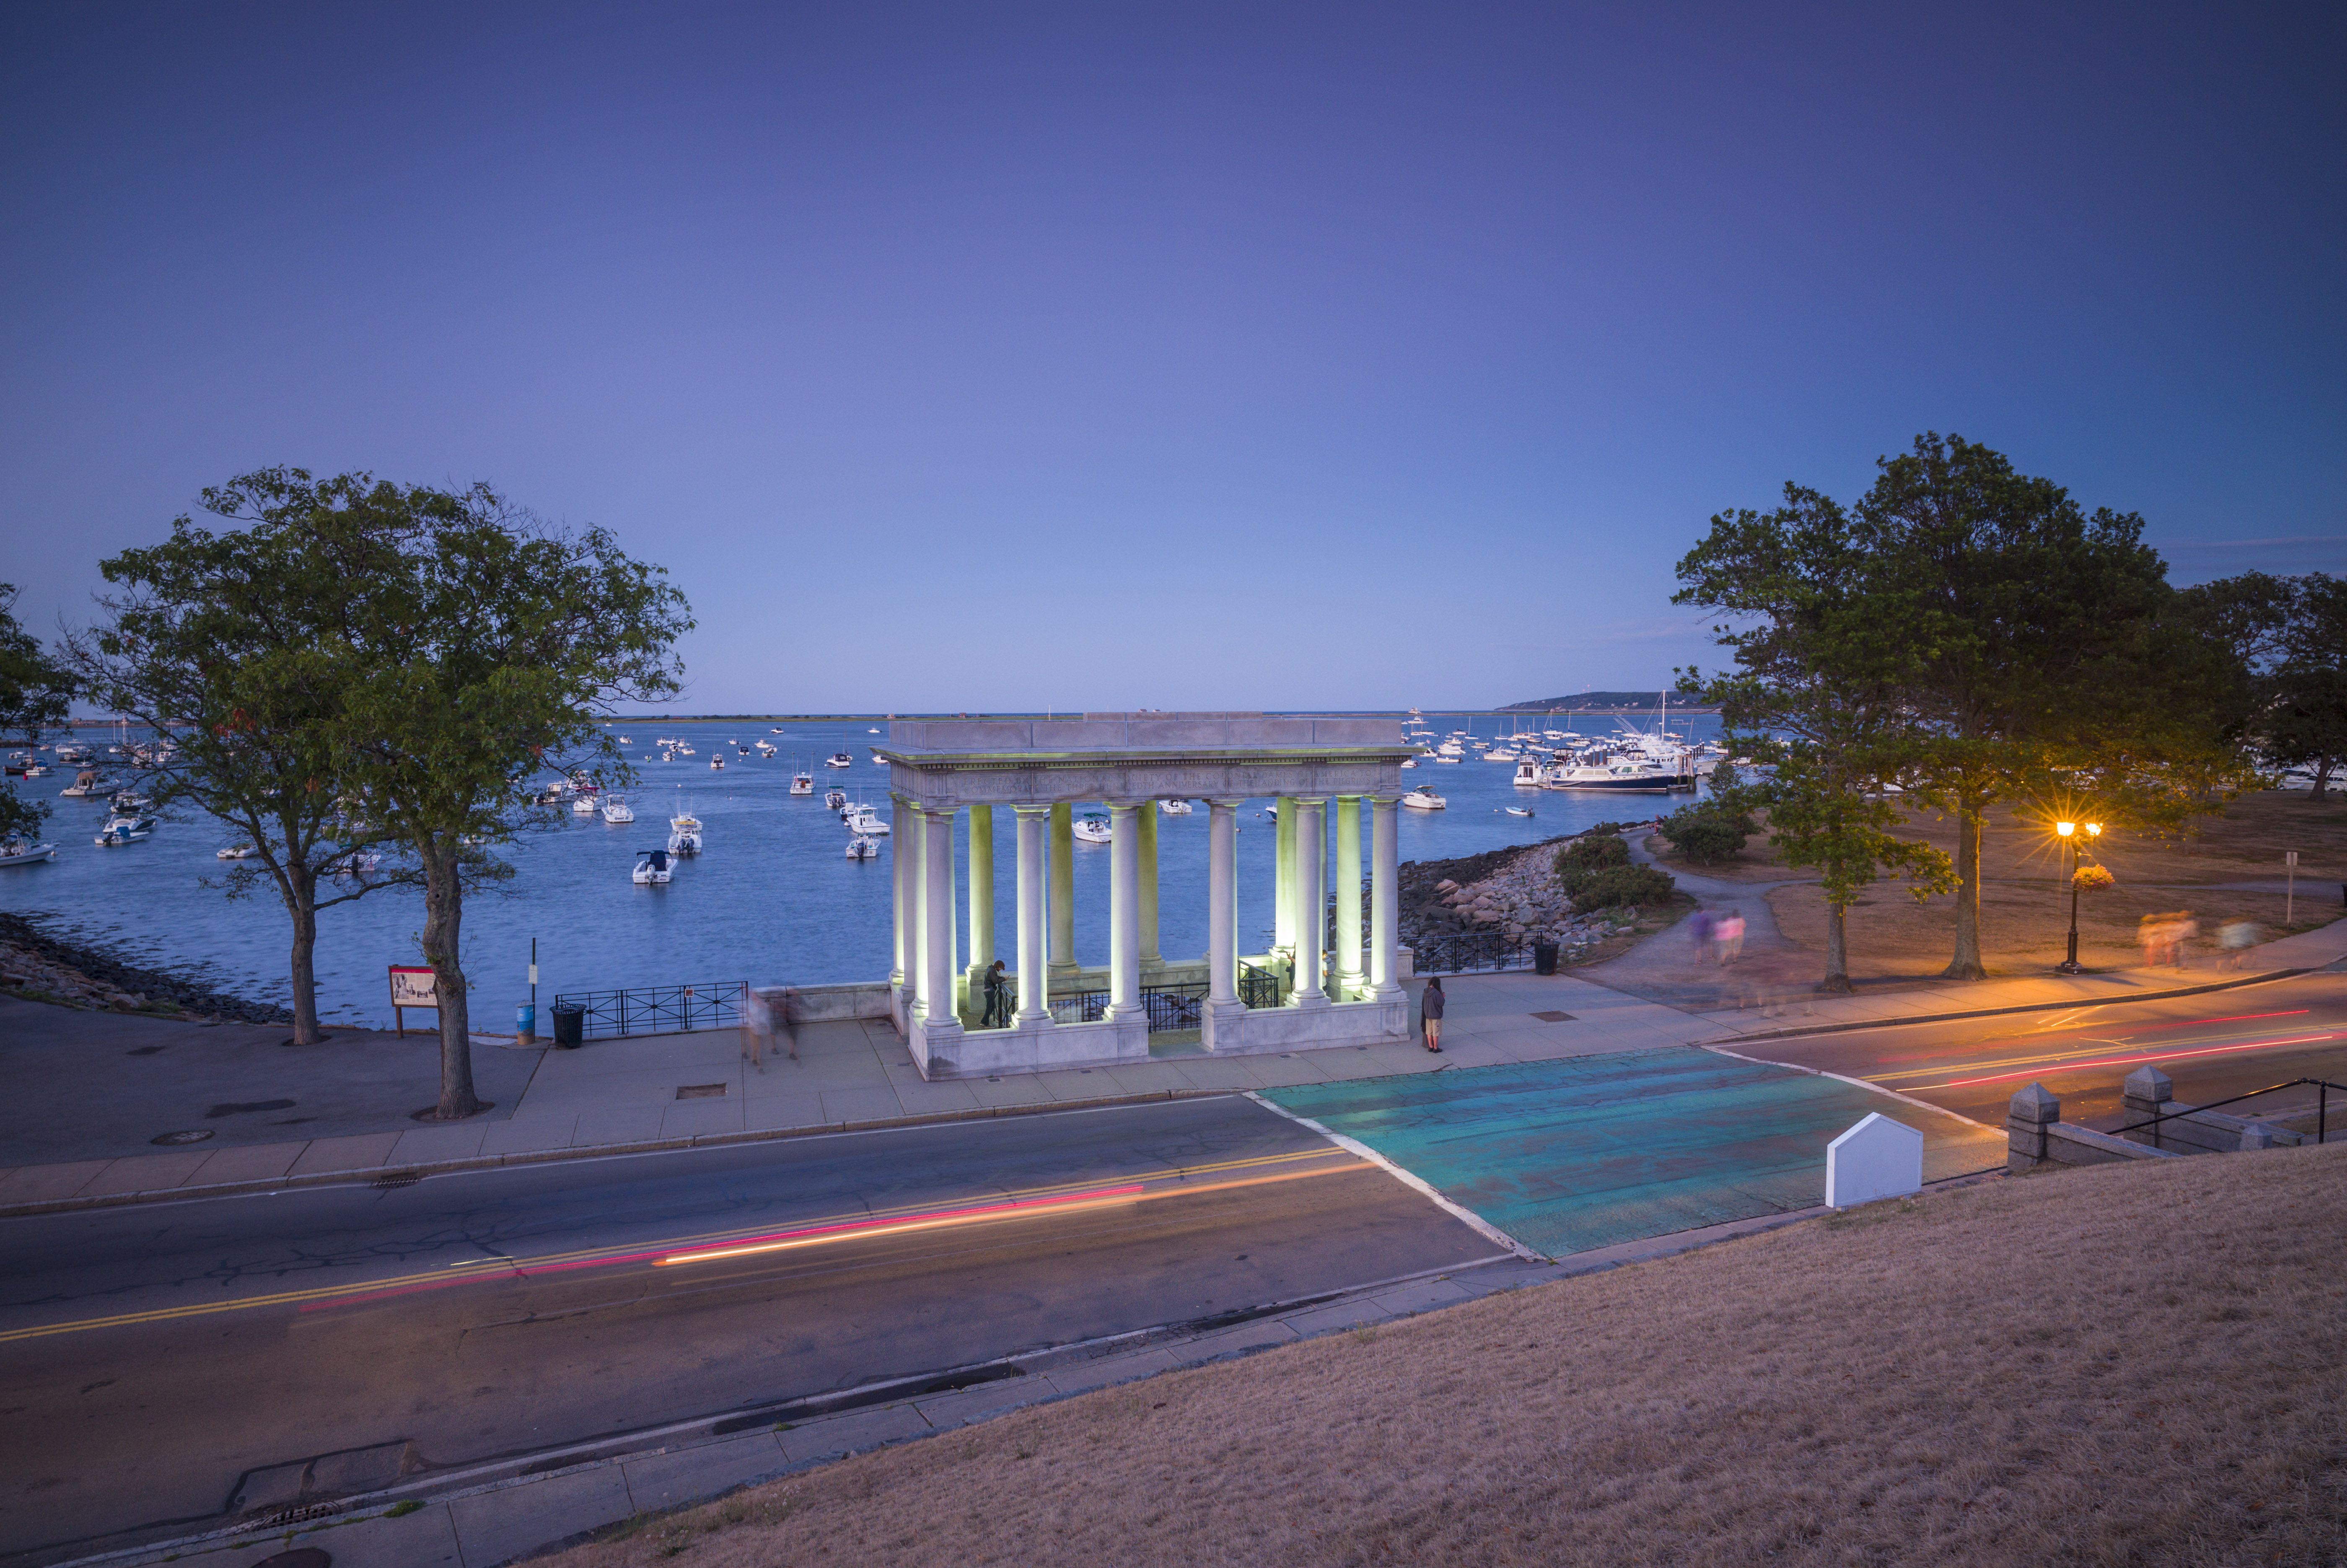 USA, Massachusetts, Plymouth, Plymouth Rock building containing Plymouth Rock, memorial to arrival of first European settlers to Massachusetts in 1620